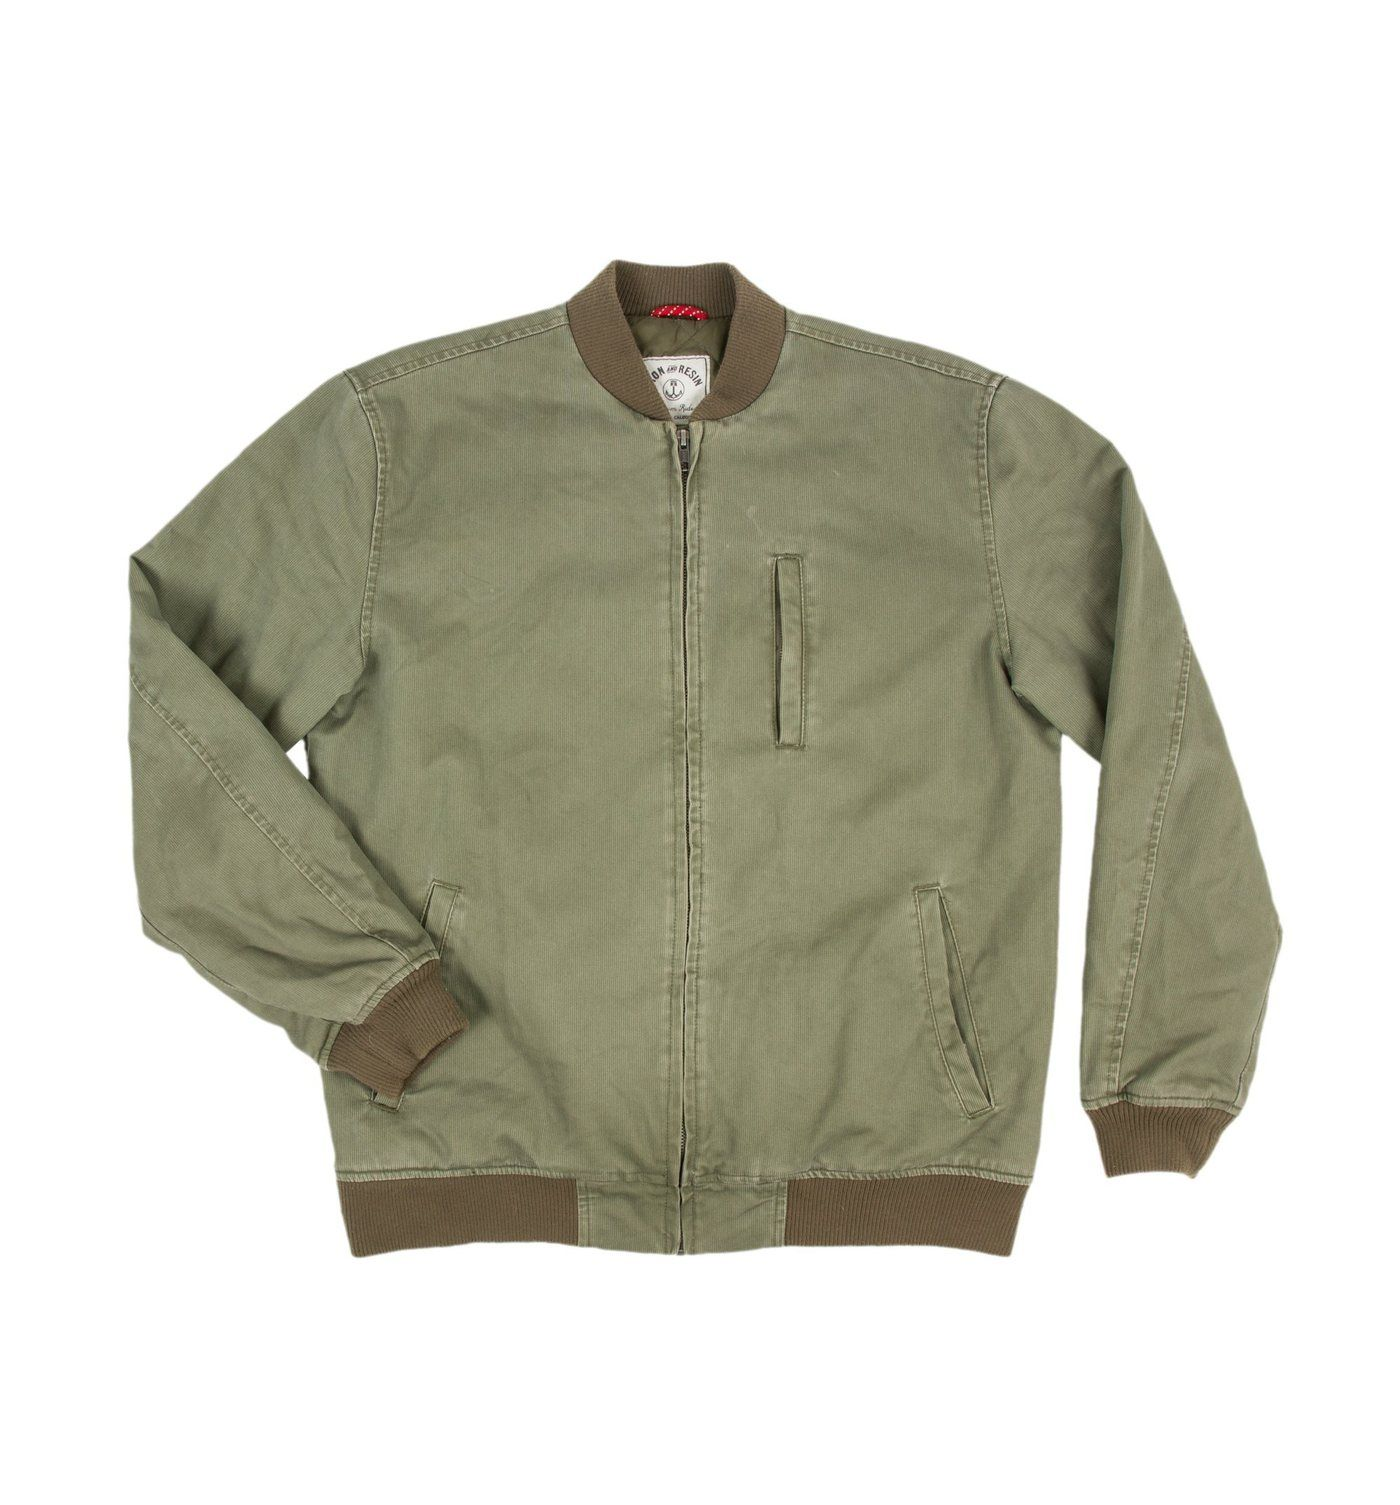 A Modern Version Of The Classic Bomber Jacket The Marauder Is A Seasonal Essential With Ribbed Collars And Cu Classic Bomber Jacket Jackets Functional Jackets [ 1505 x 1400 Pixel ]